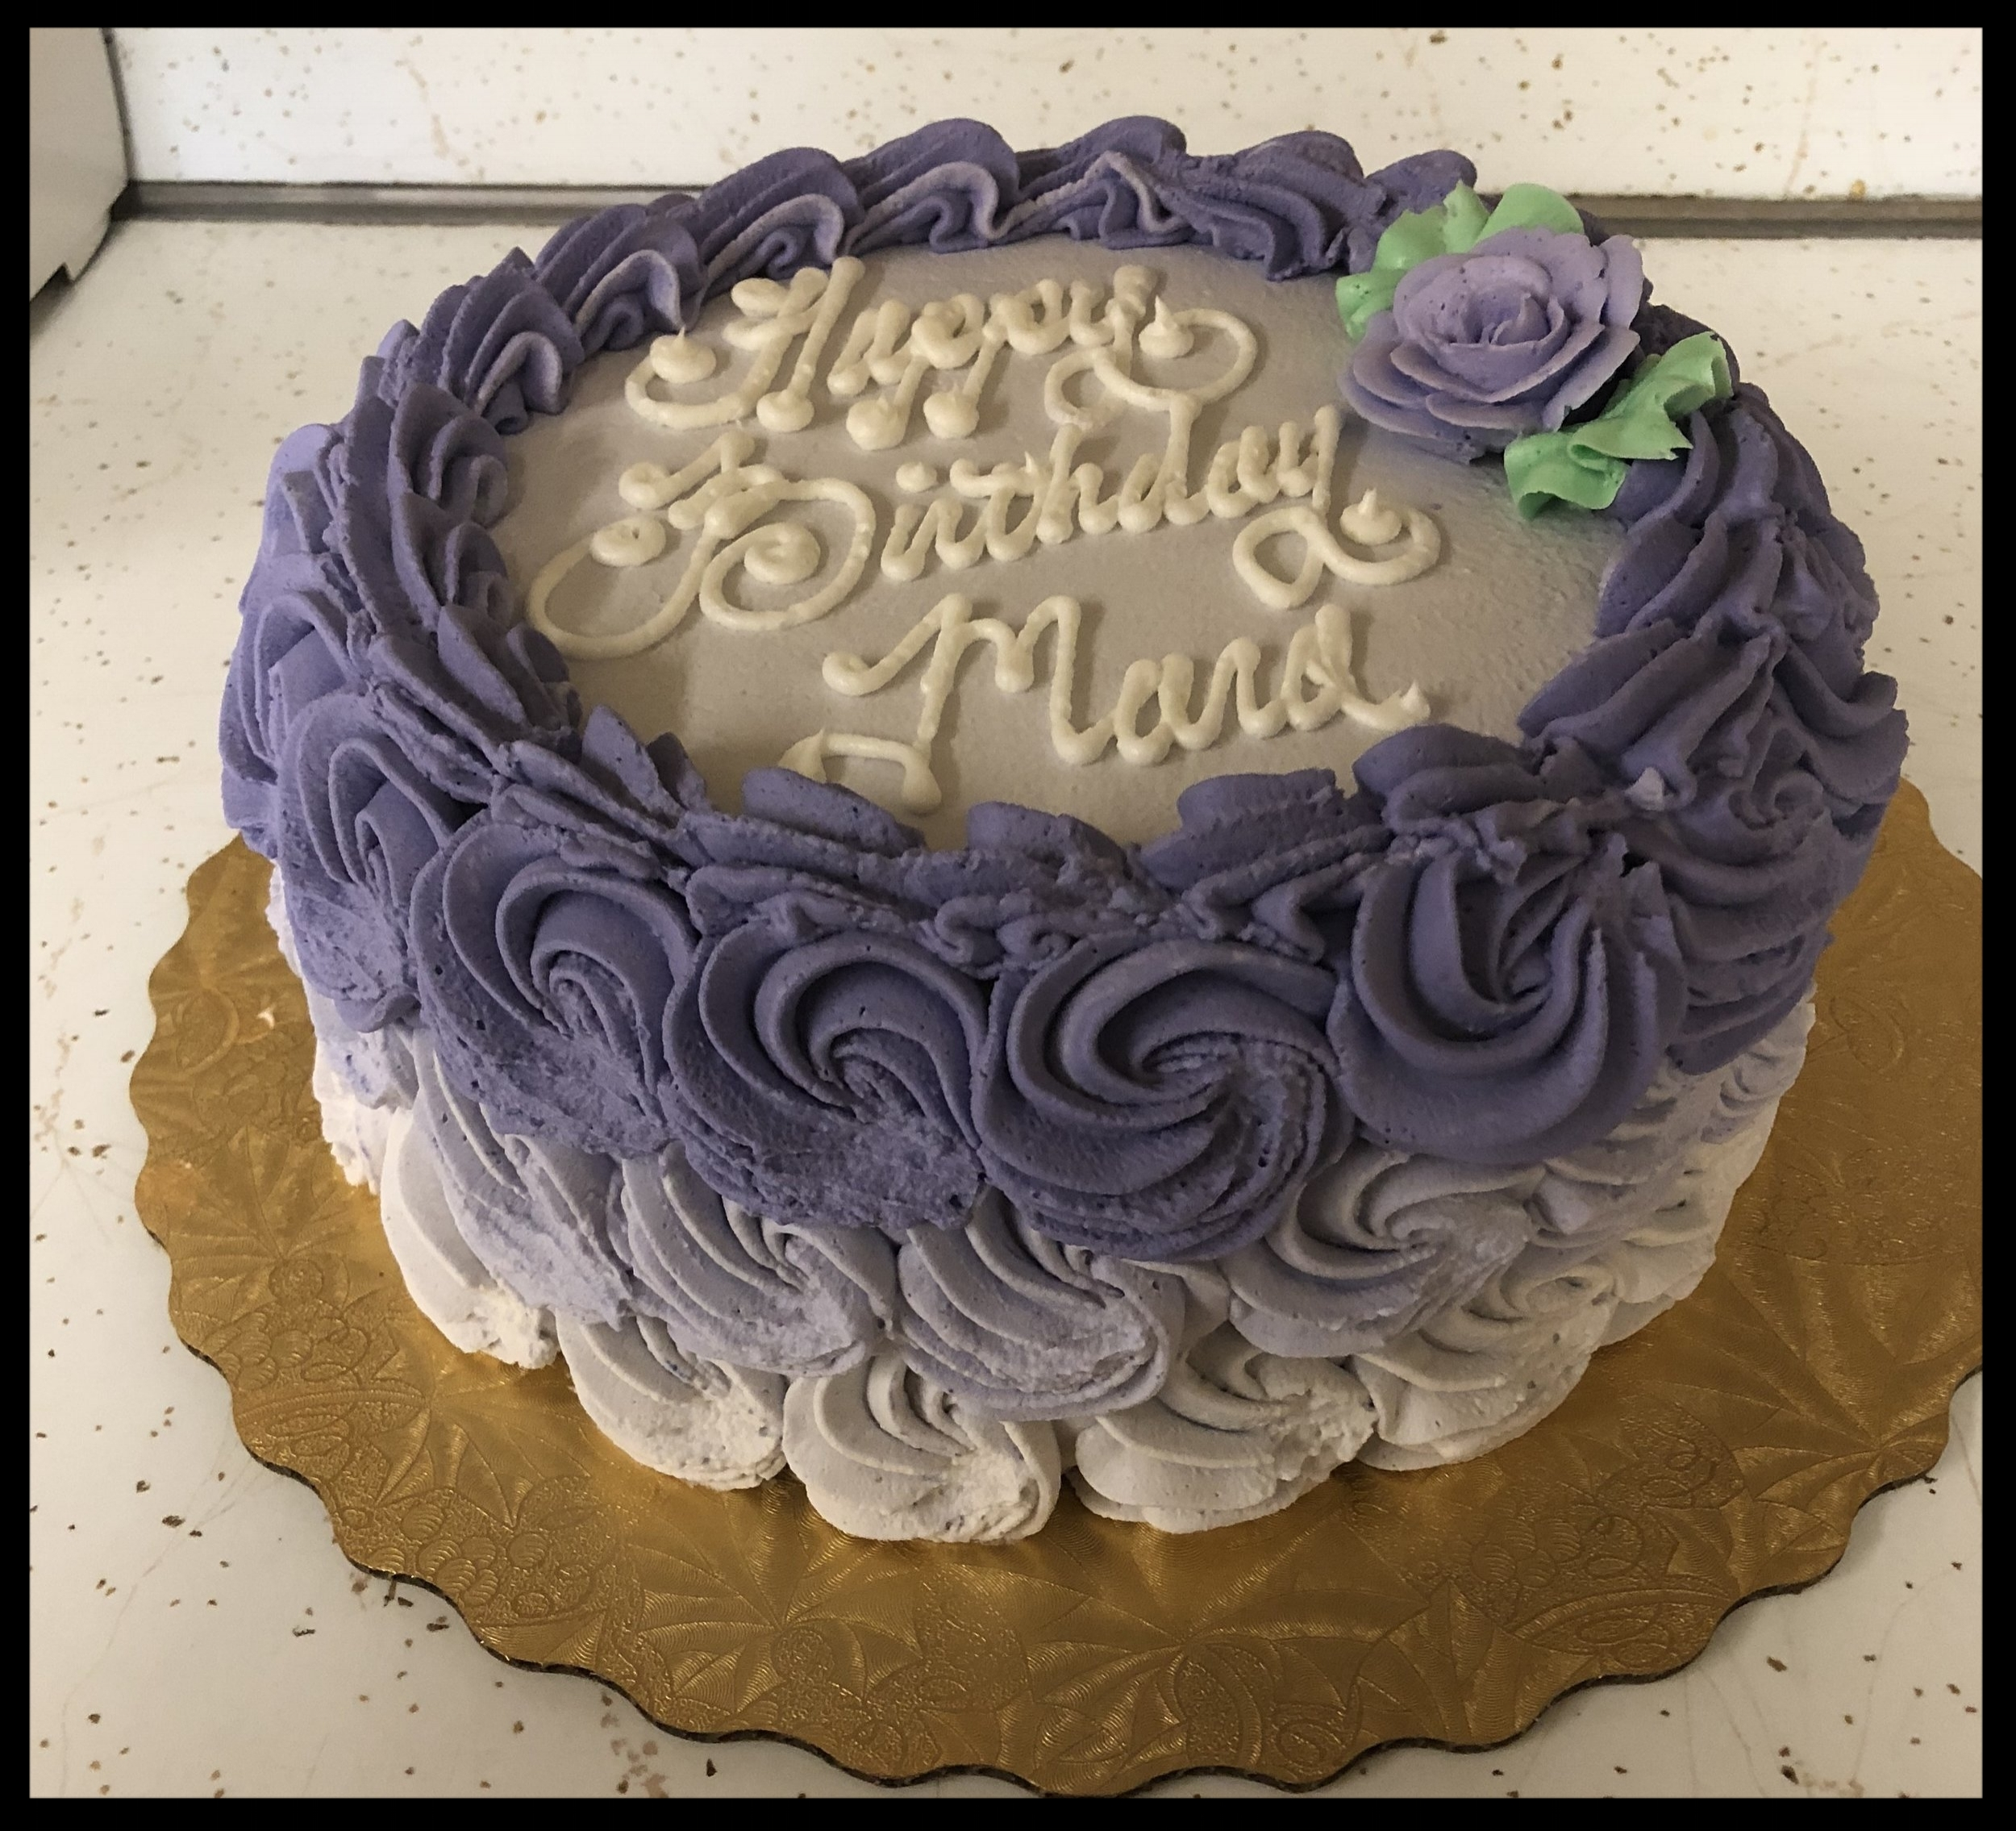 Ombre Swirl Cakes - $10 extra charge.